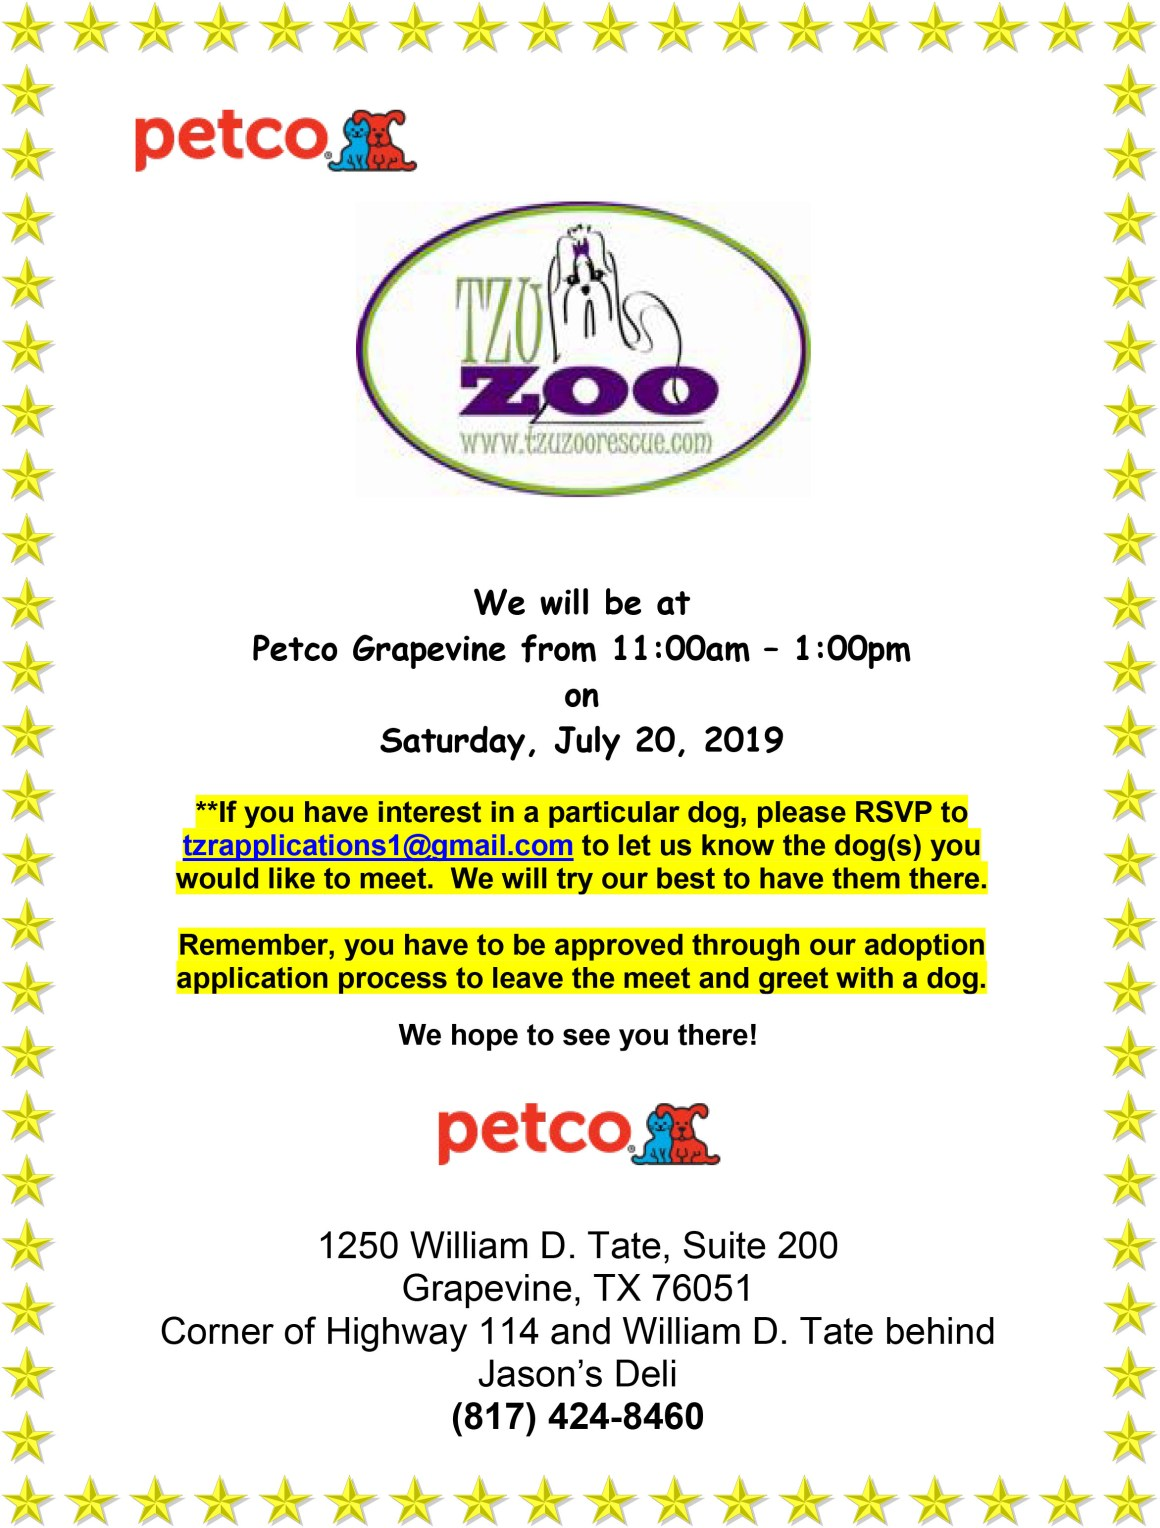 Meet & Greet - Petco Grapevine @ Petco - Grapevine